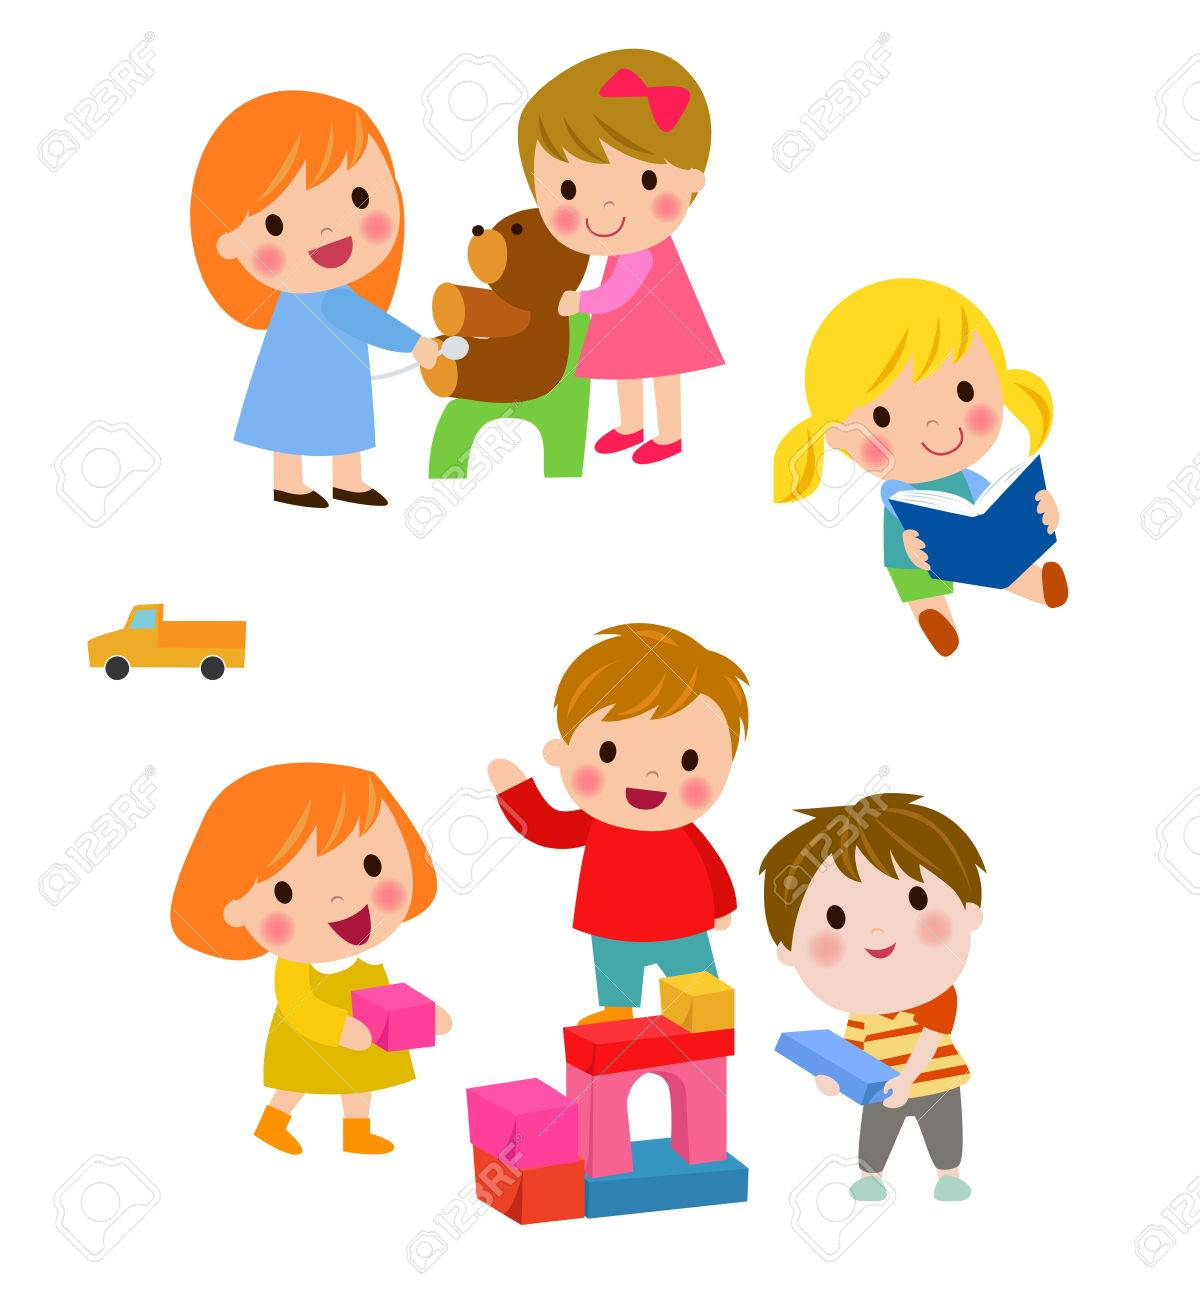 Children Play With Toys In The Kindergarten Royalty Free Cliparts